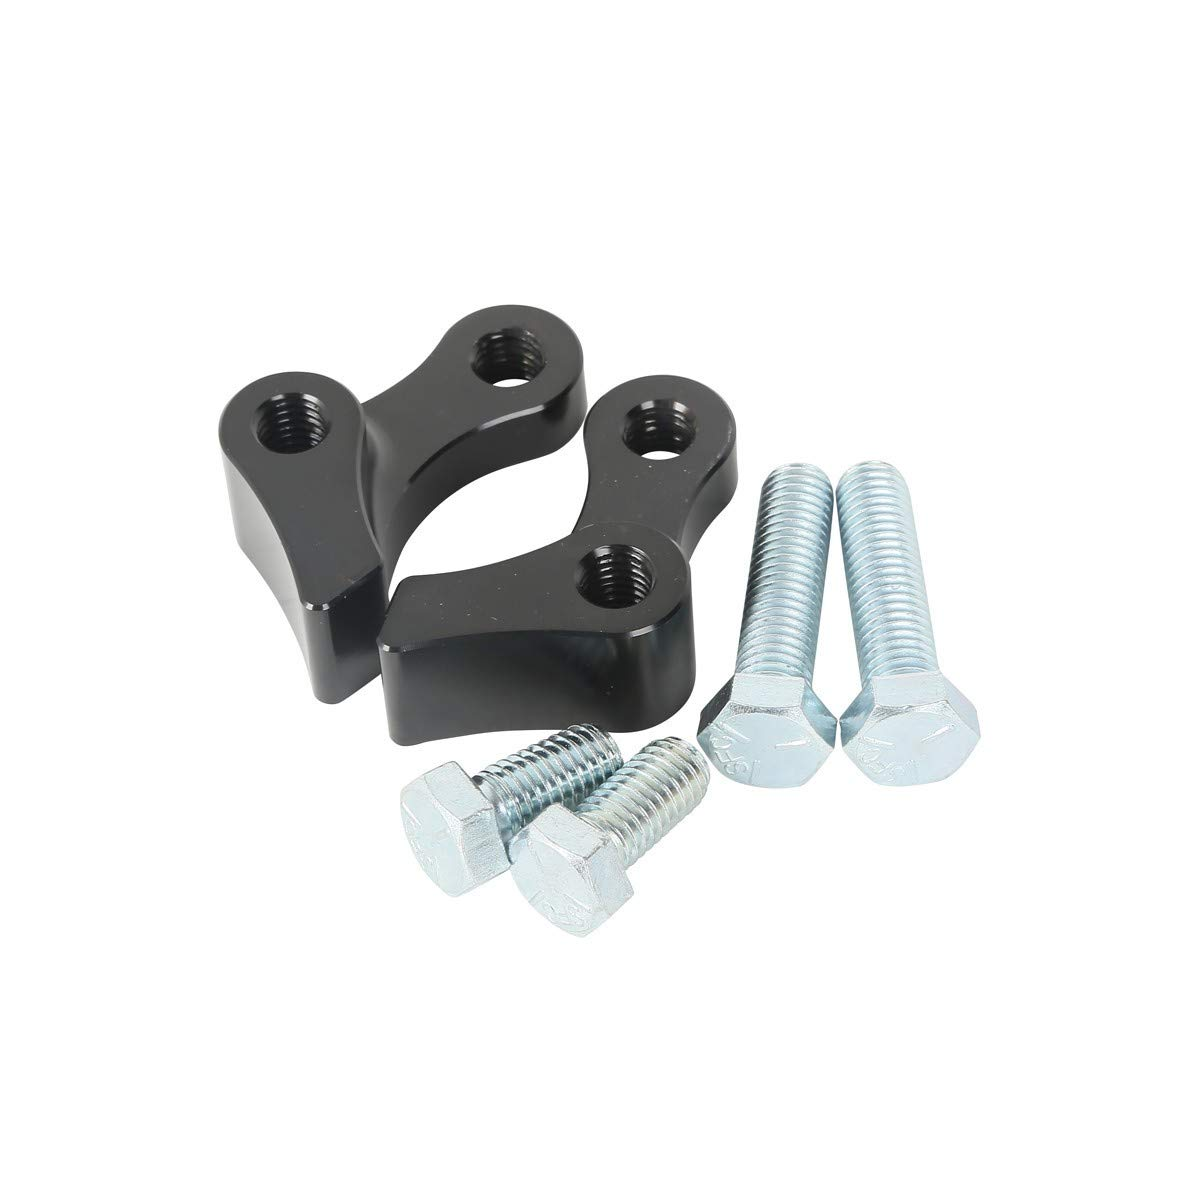 TCMT Black 1 INCH Rear Lowering Kit Fits For Harley Dyna Superglide Wideglide 1995-2005